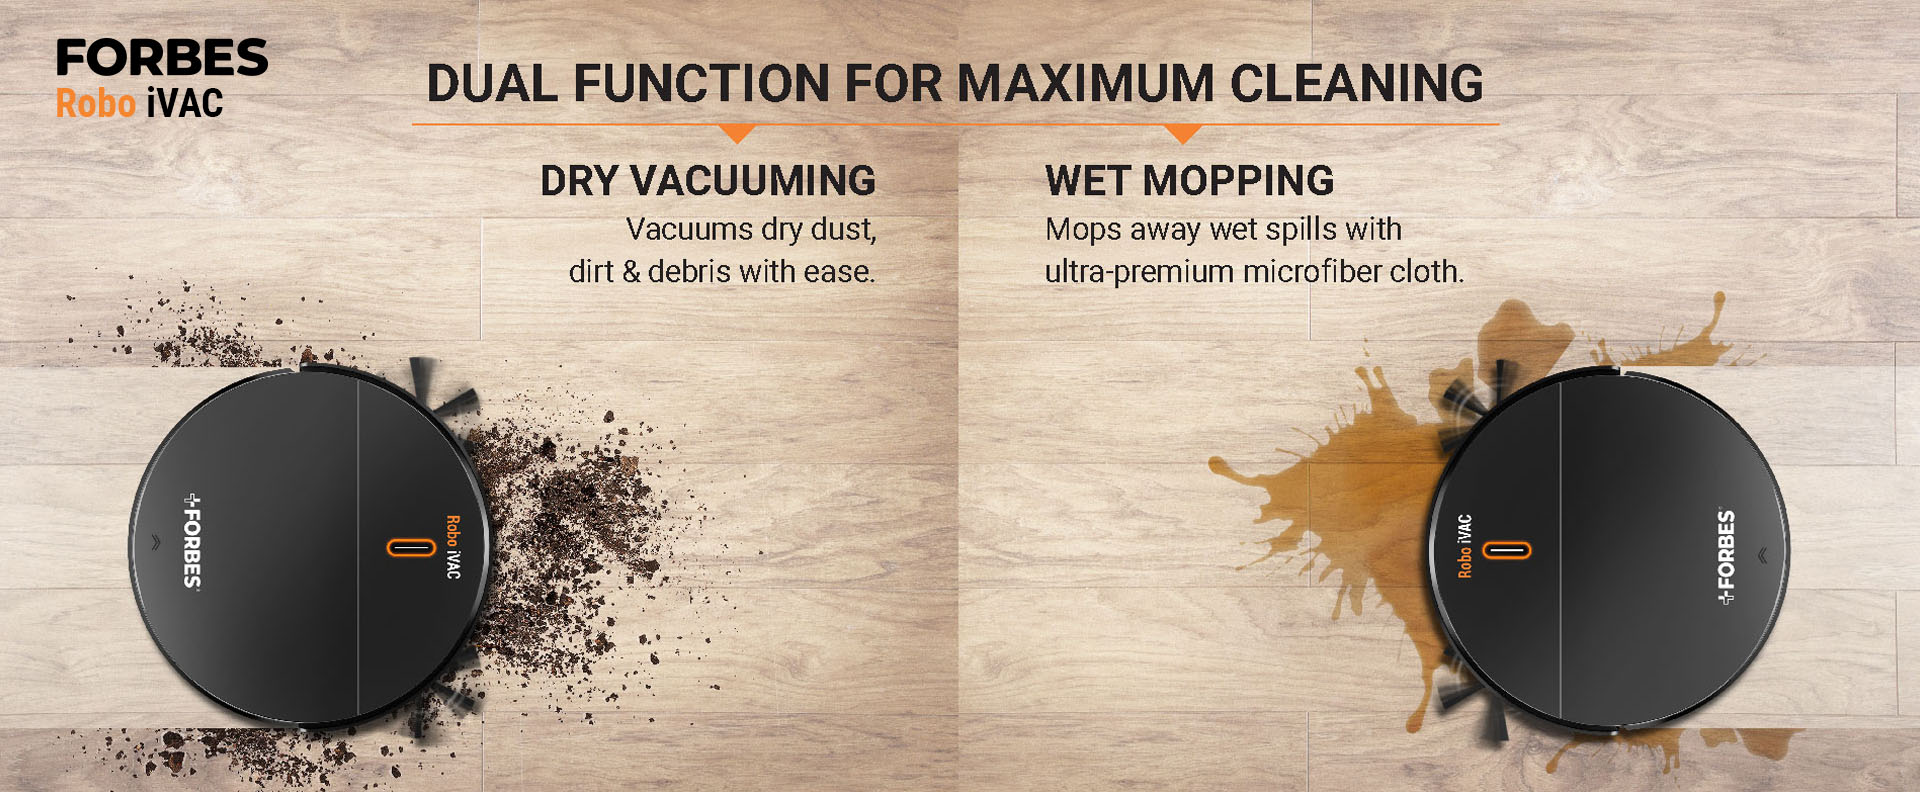 Dry vacuuming Vacuums dry dust, dirt & debris with ease. Wet Mopping Mops away wet spills with ultra-premium microfiber cloth.